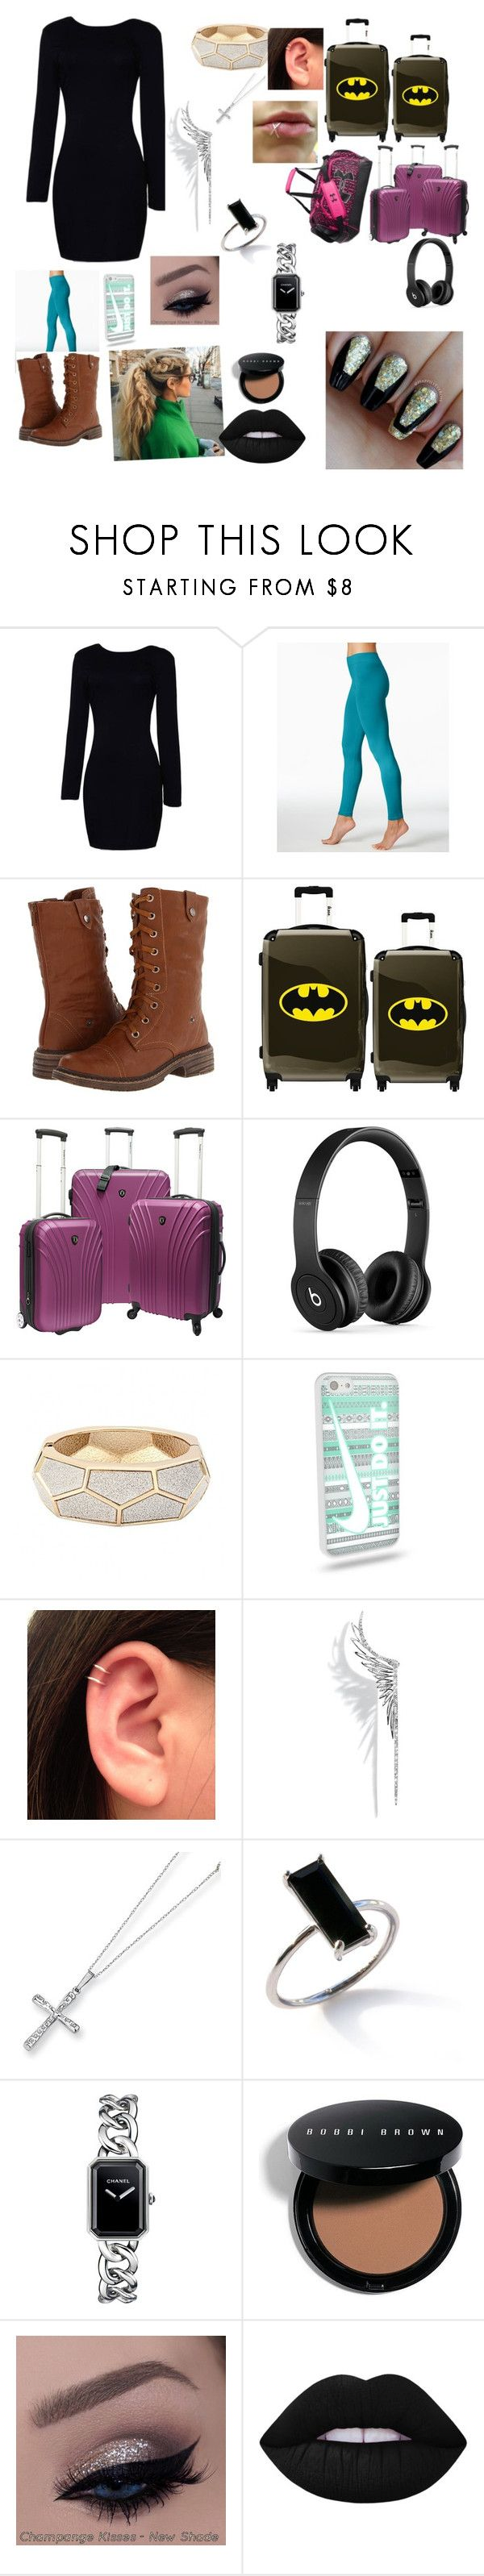 """Going to Paris with"" by hazzajelly on Polyvore featuring Wanted, IKASE, Under Armour, Beats by Dr. Dre, Cristina Ortiz, Kevin Jewelers, Chanel, Bobbi Brown Cosmetics and Lime Crime"